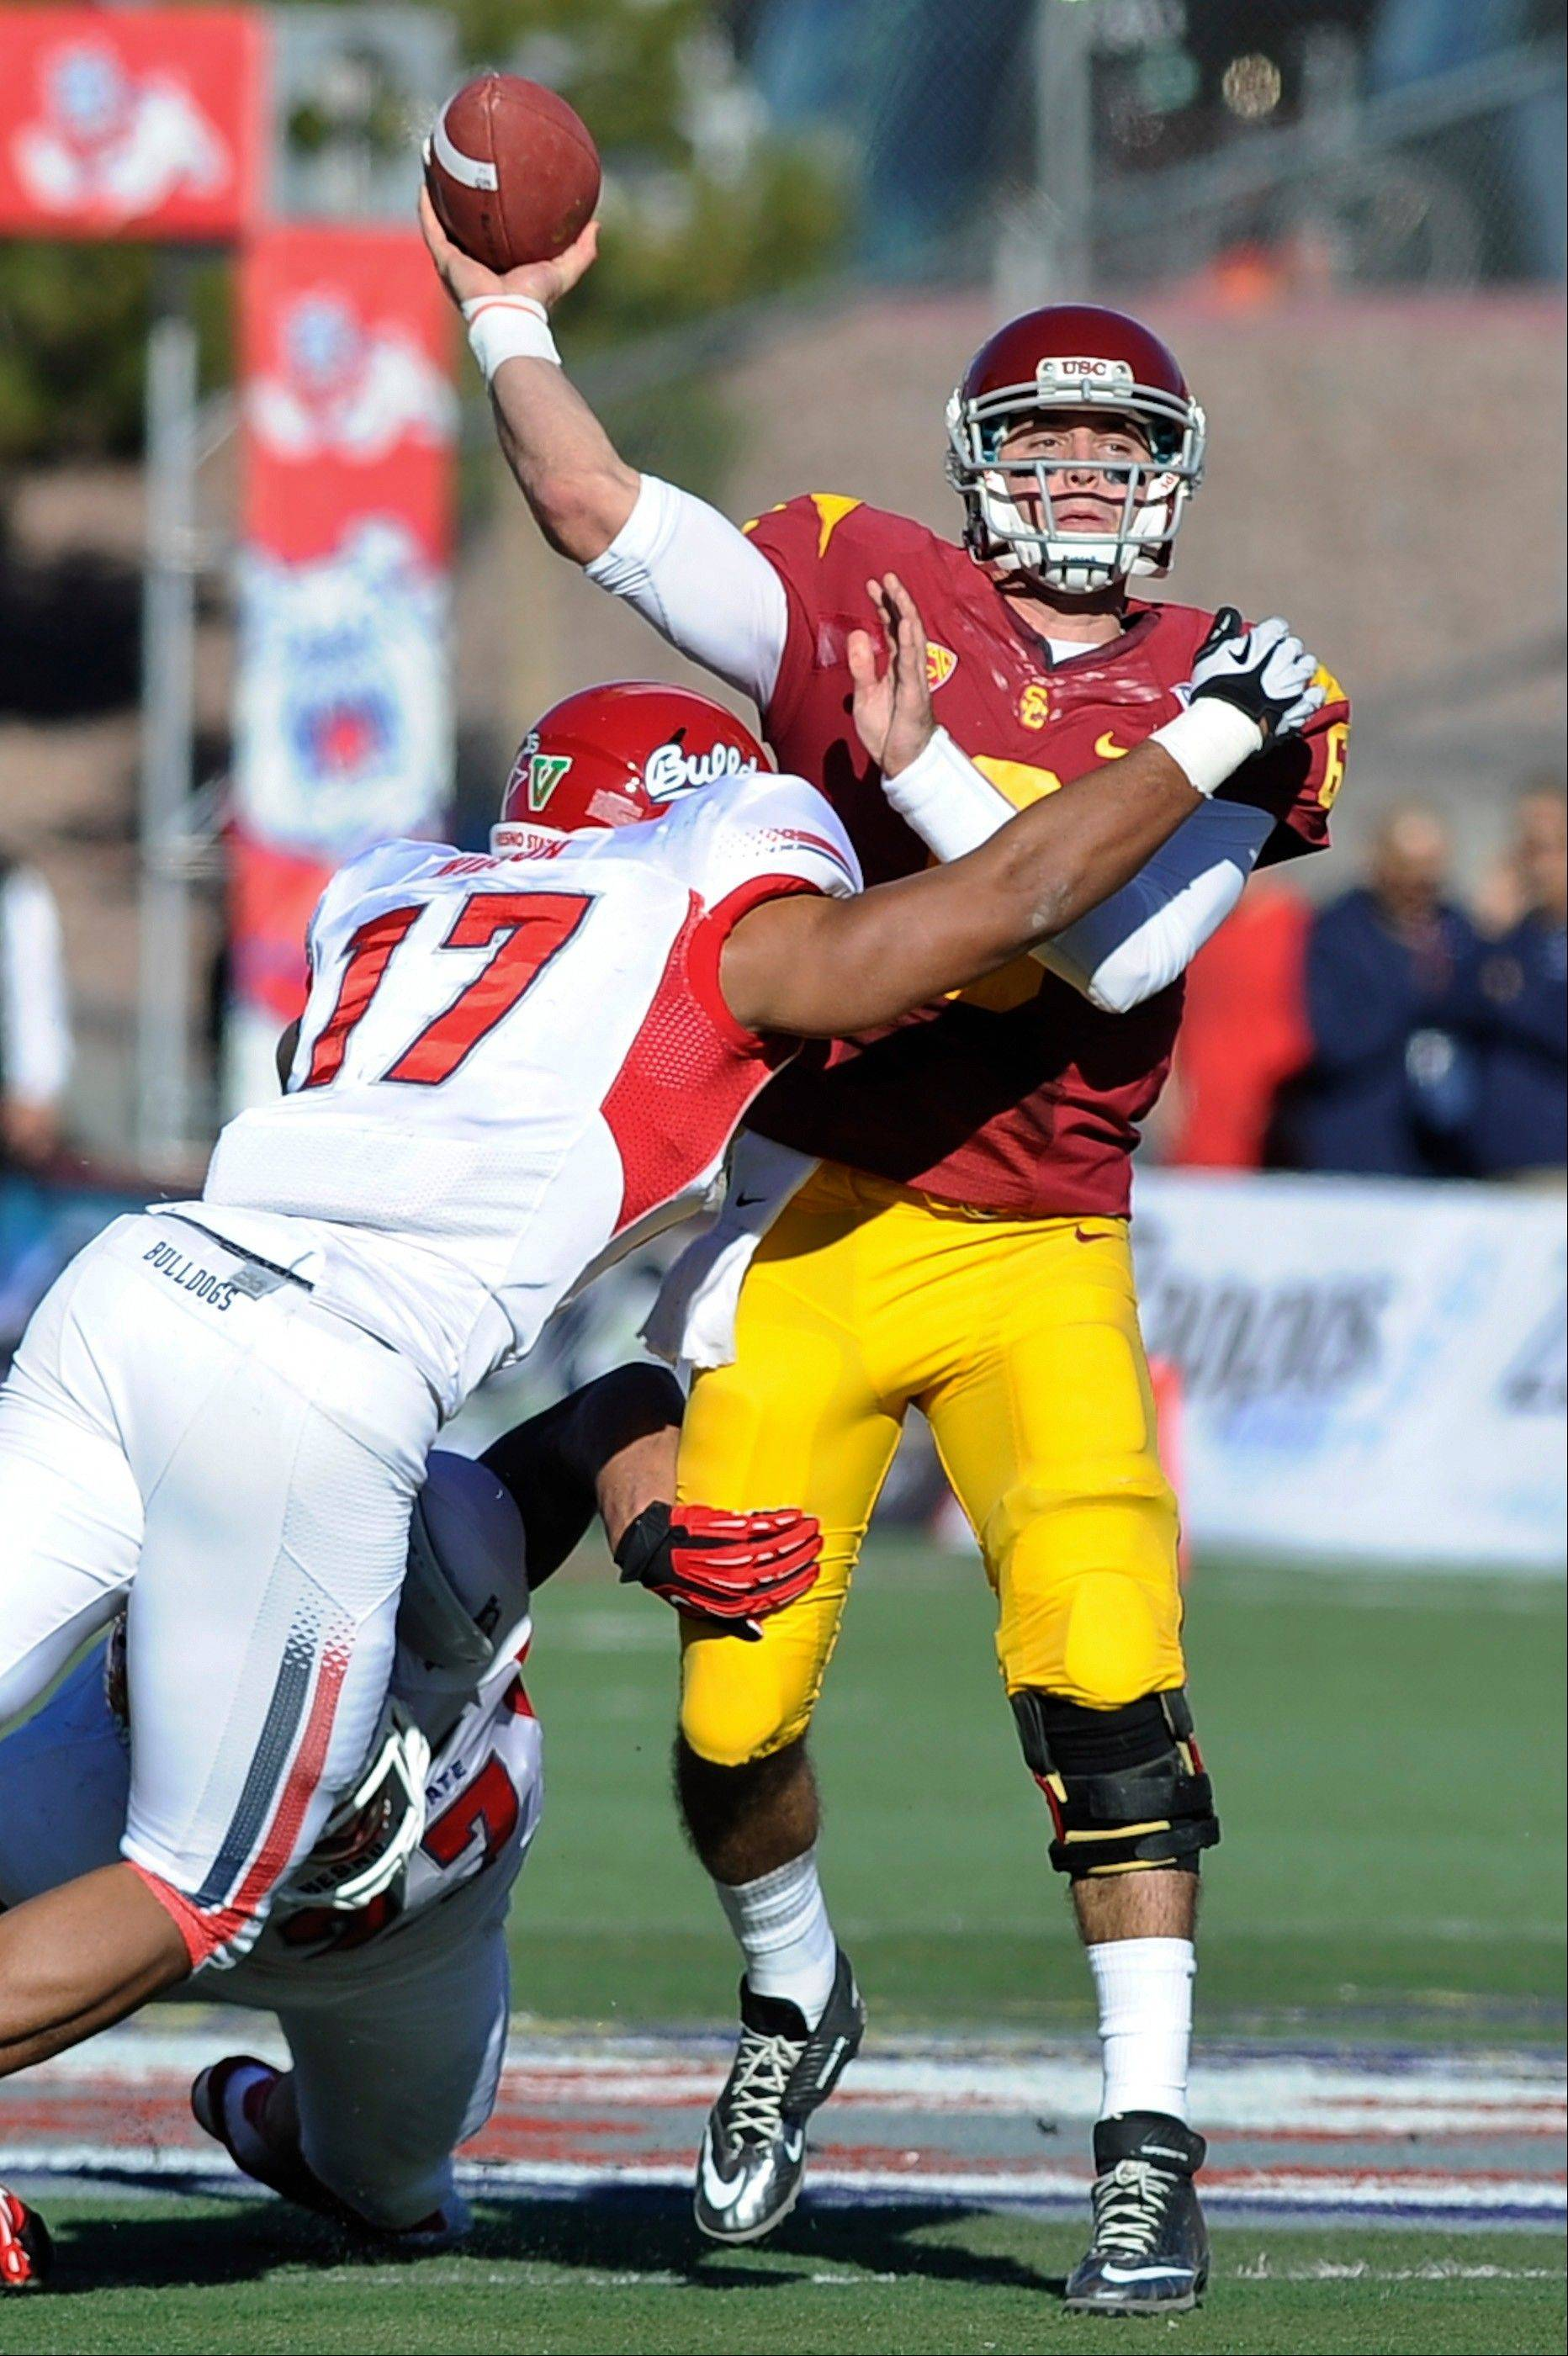 USC routs Fresno St. in Las Vegas Bowl